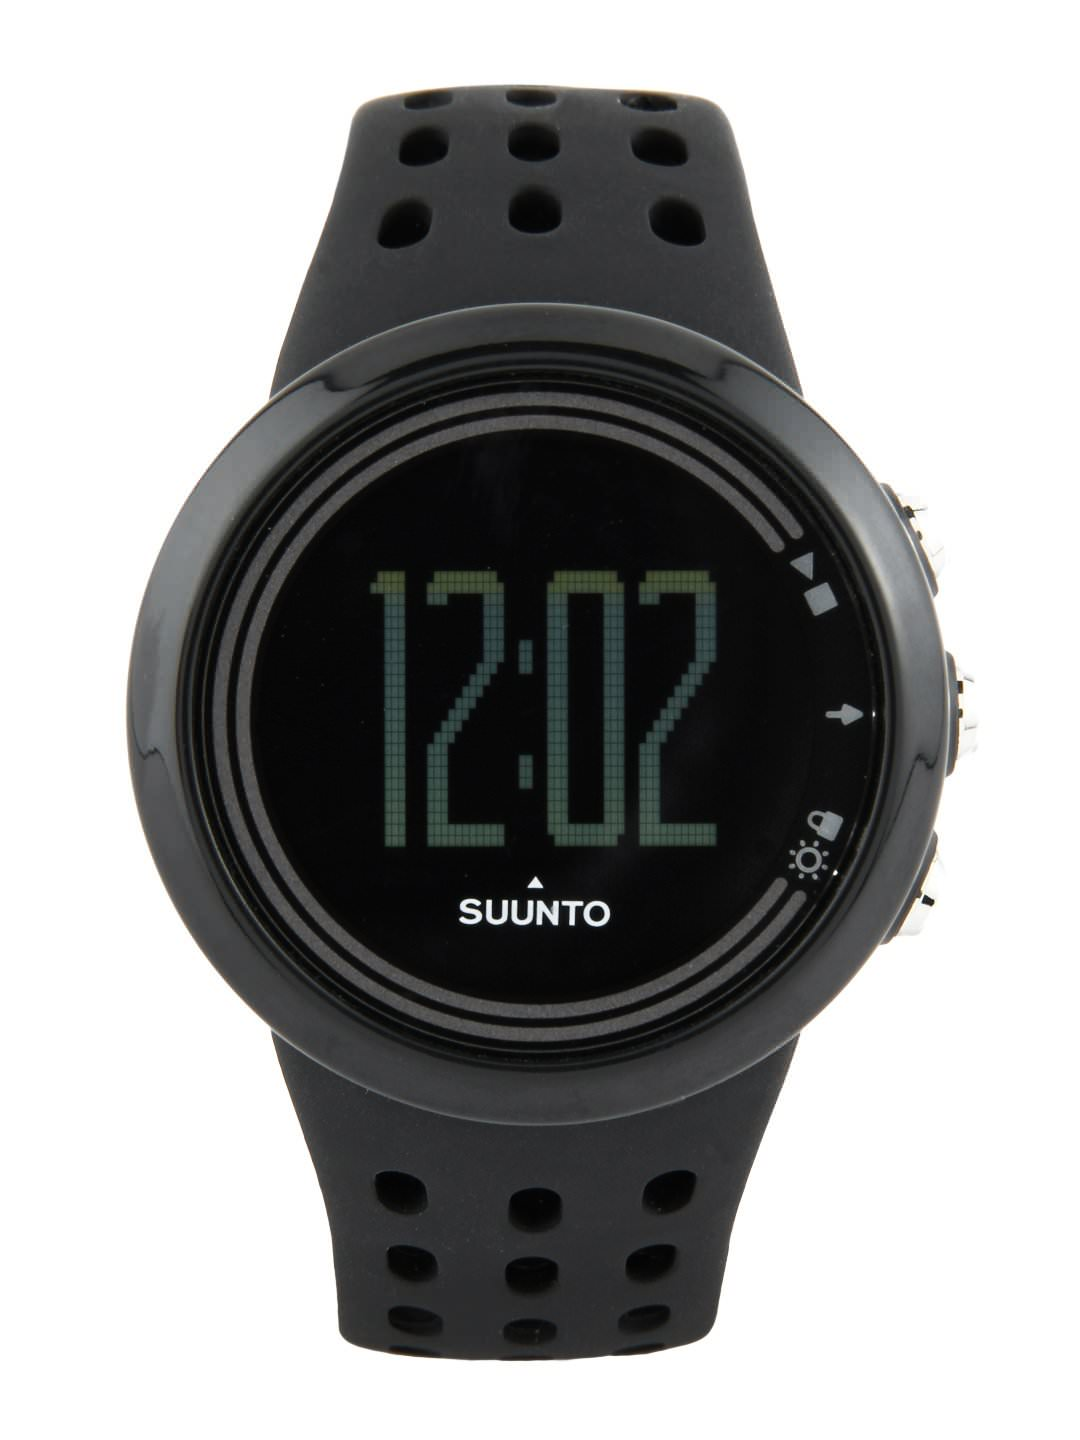 Suunto-Men-Watches_4f0b4c0302e5c77775187e6dc4edec99_images_1080_1440_mini How Can Fitness Watches Help You To Keep Fit?!